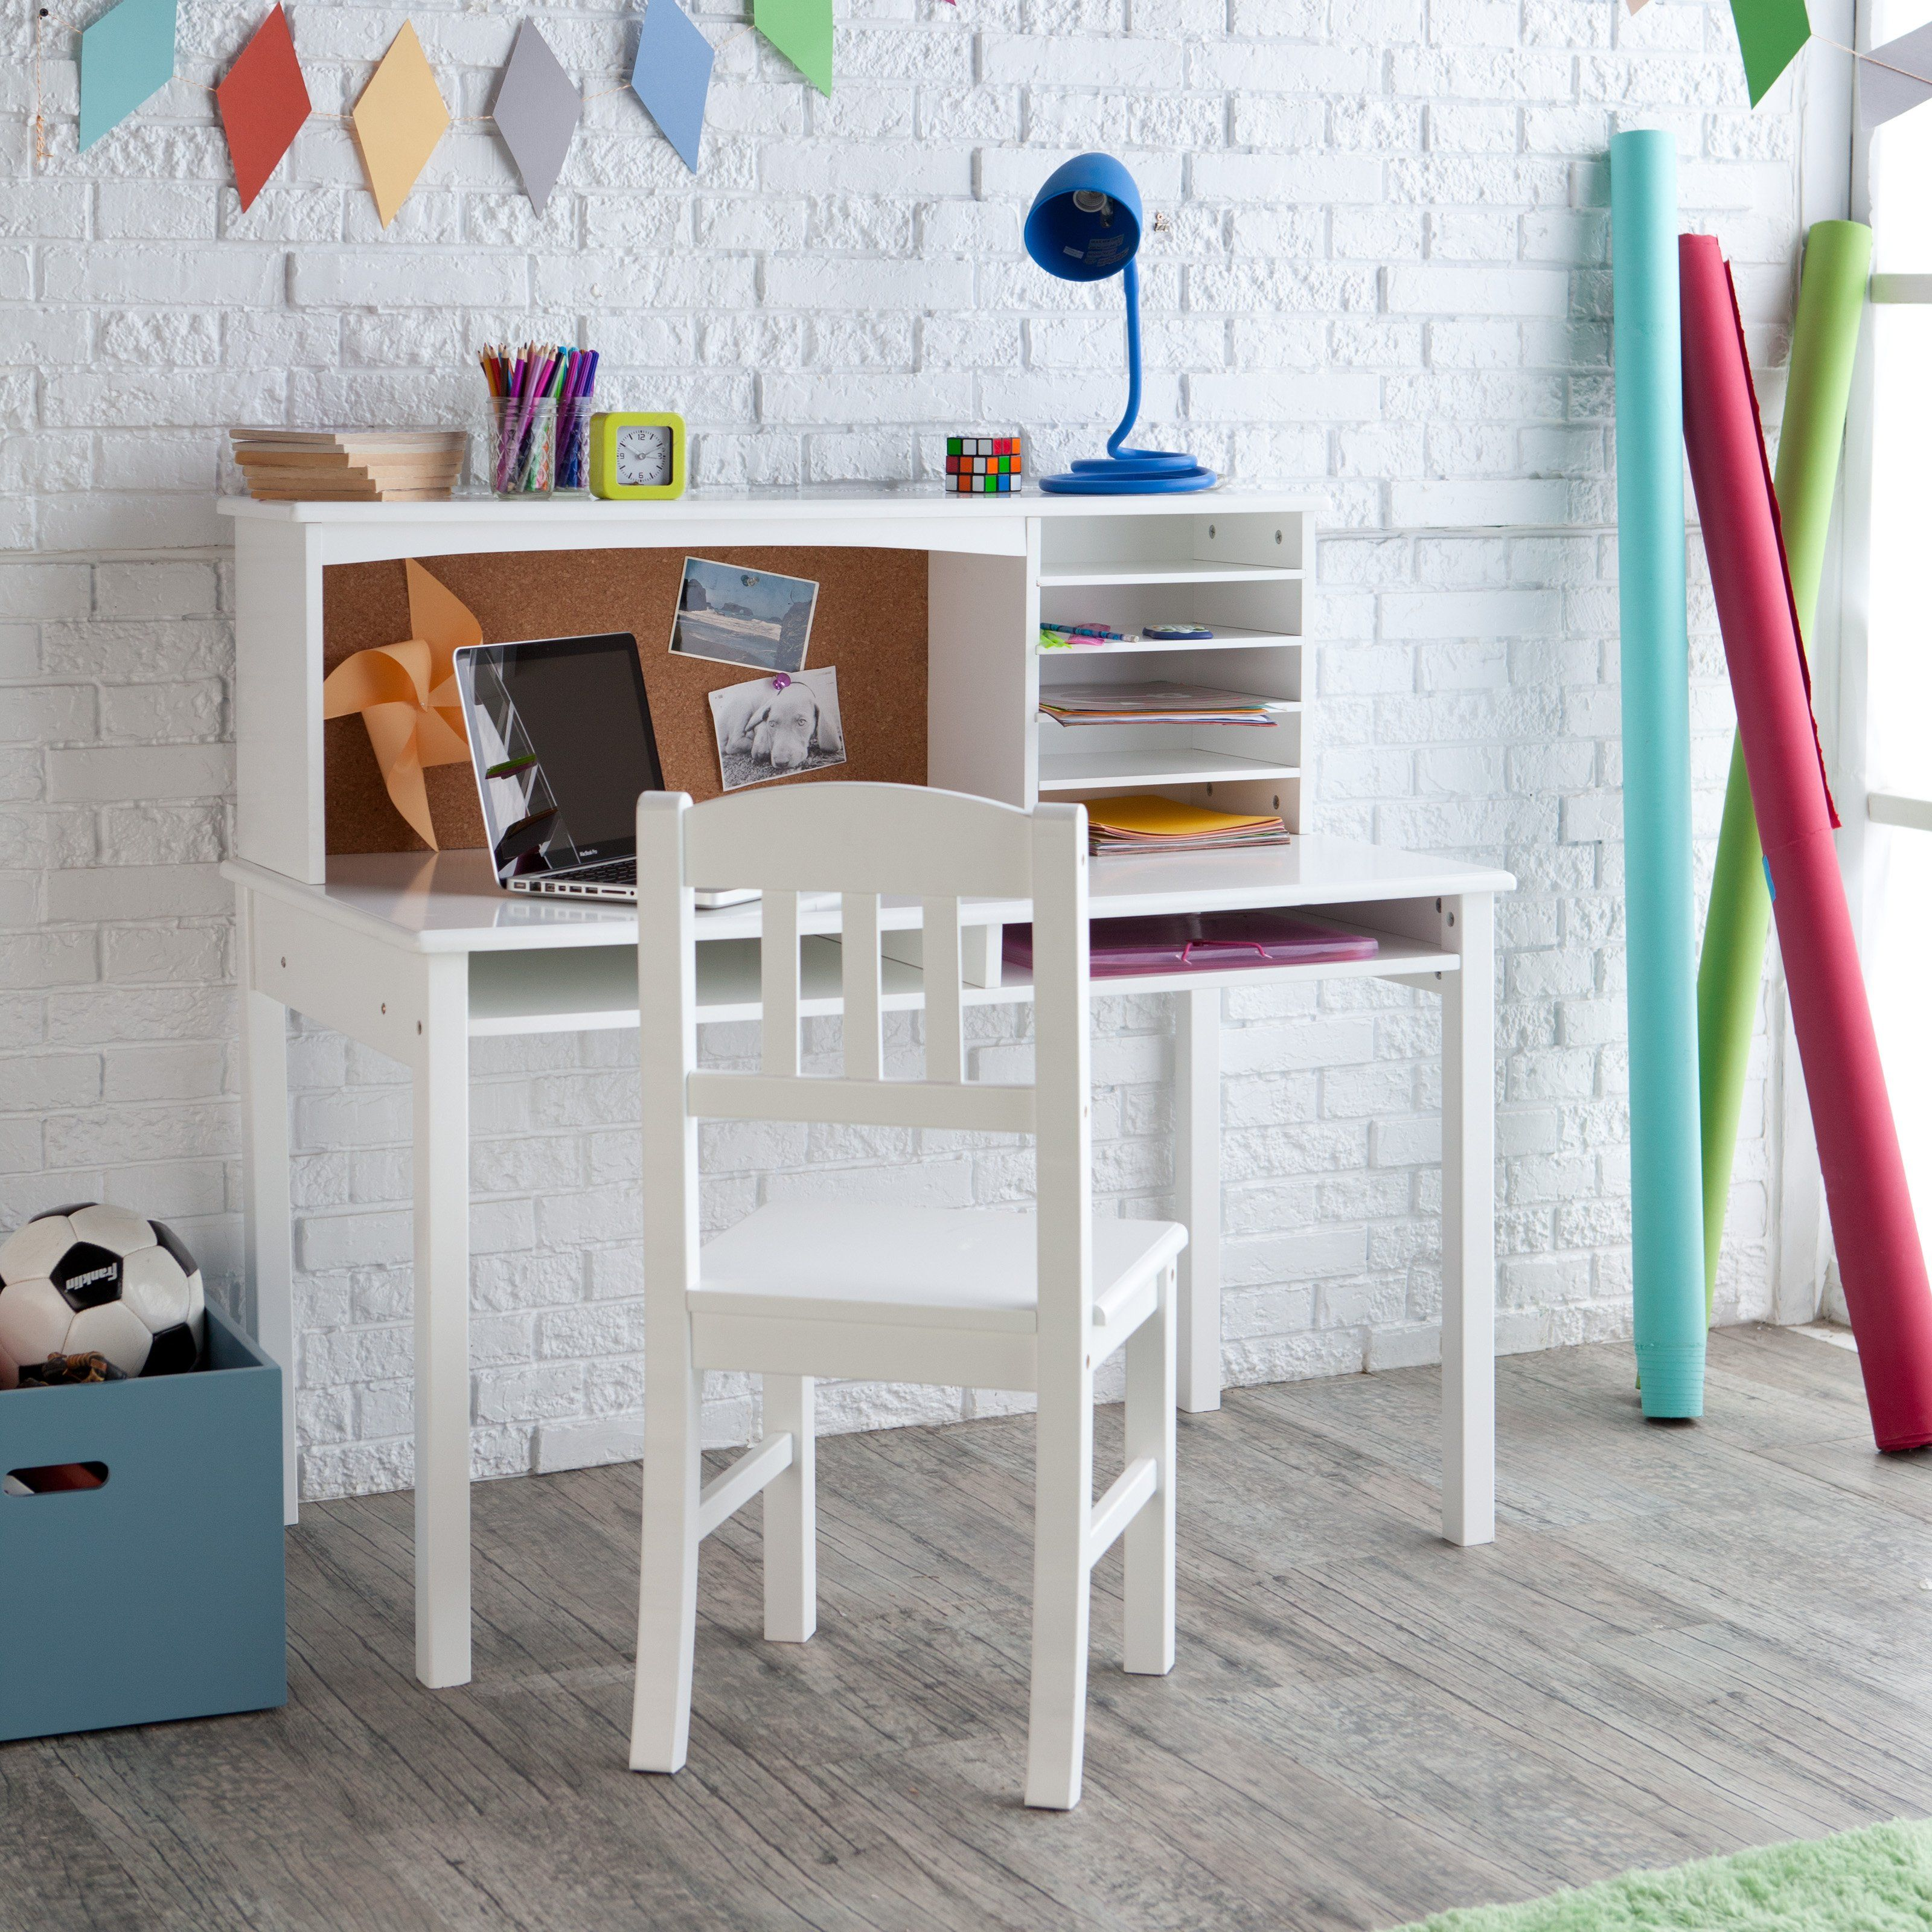 Have To Have It Guidecraft Media Desk Chair Set White 199 98 Desk And Chair Set Childrens Desk And Chair Childrens Desk